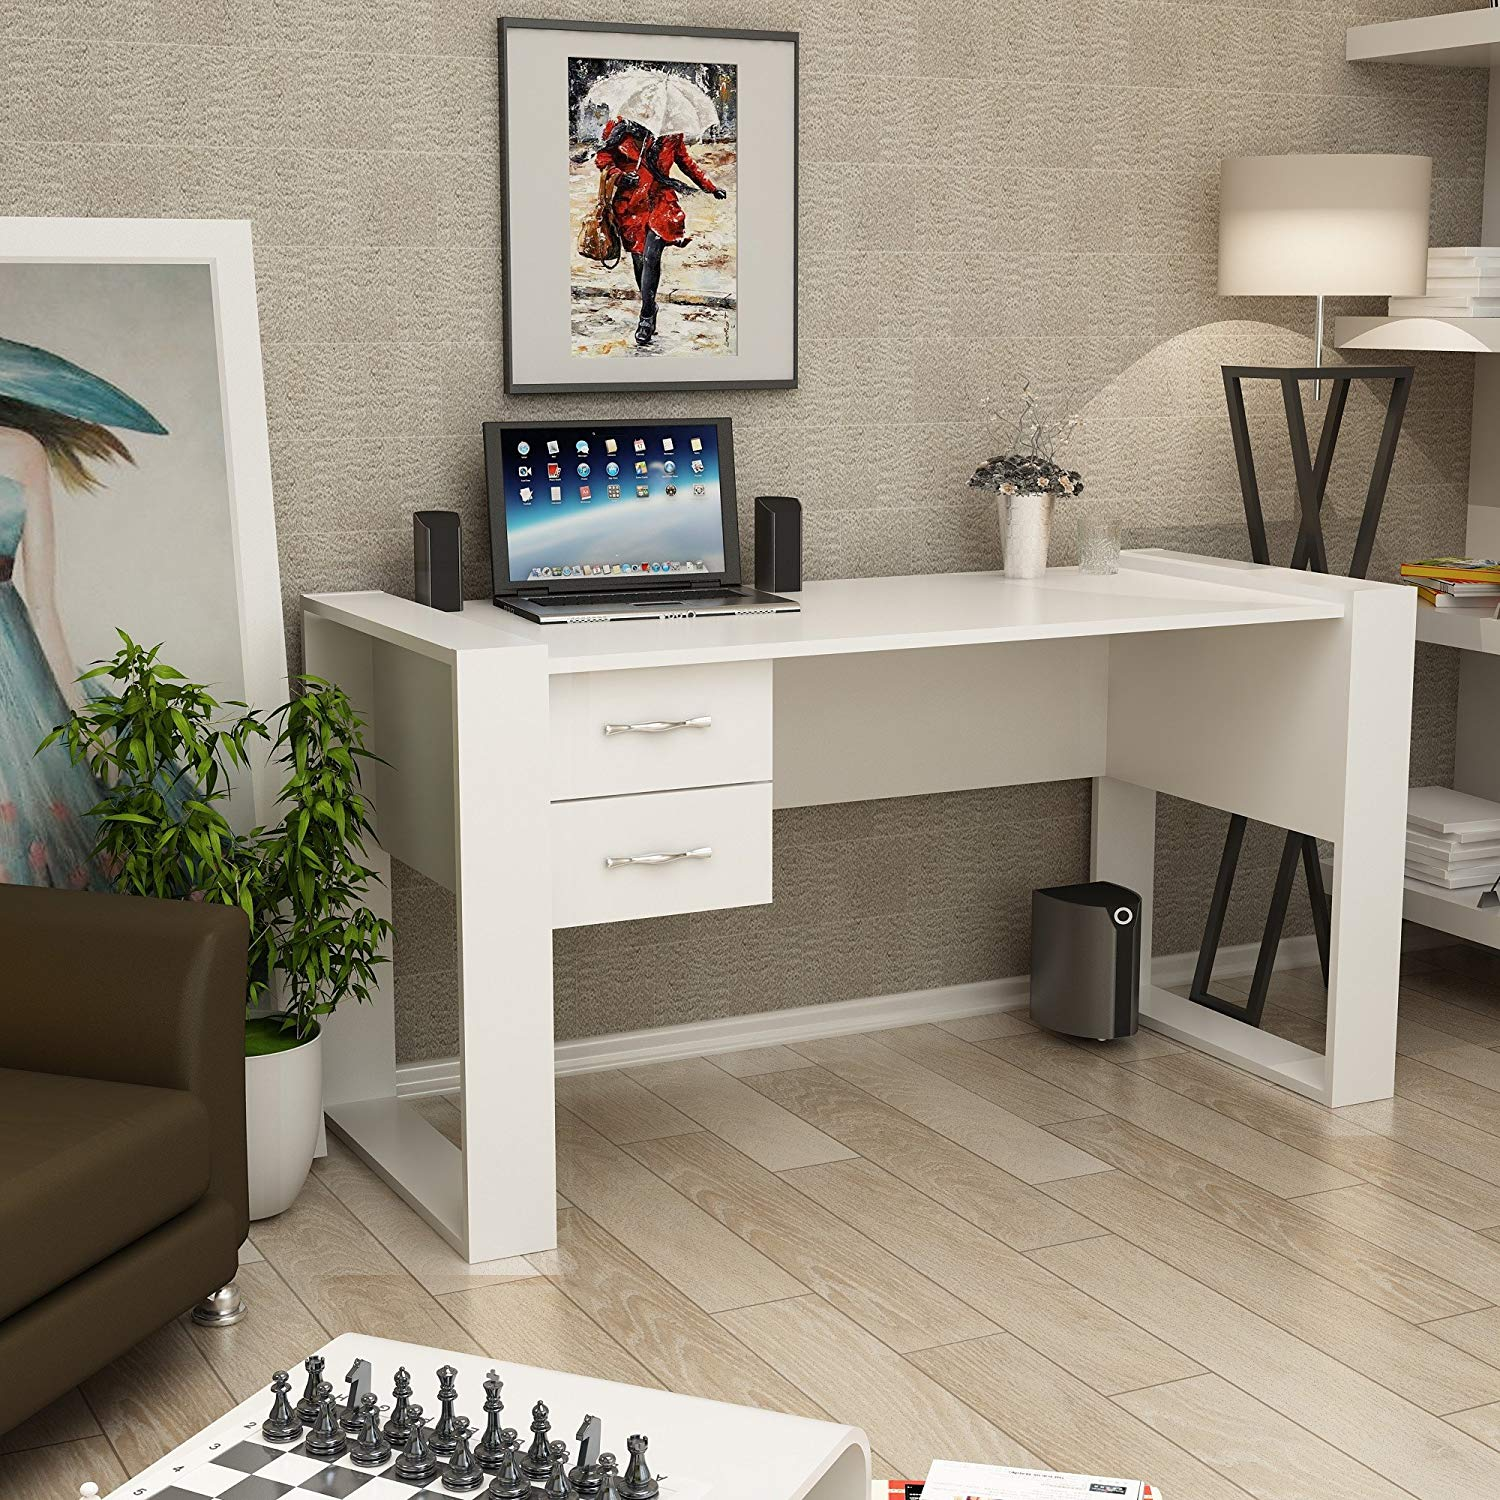 Writing Computer Desk Modern & Simple White One Color Simple Decorative Functional Classic Study Desk Industrial Style Study & Laptop Table for Home, Office, Living Room, Study Room